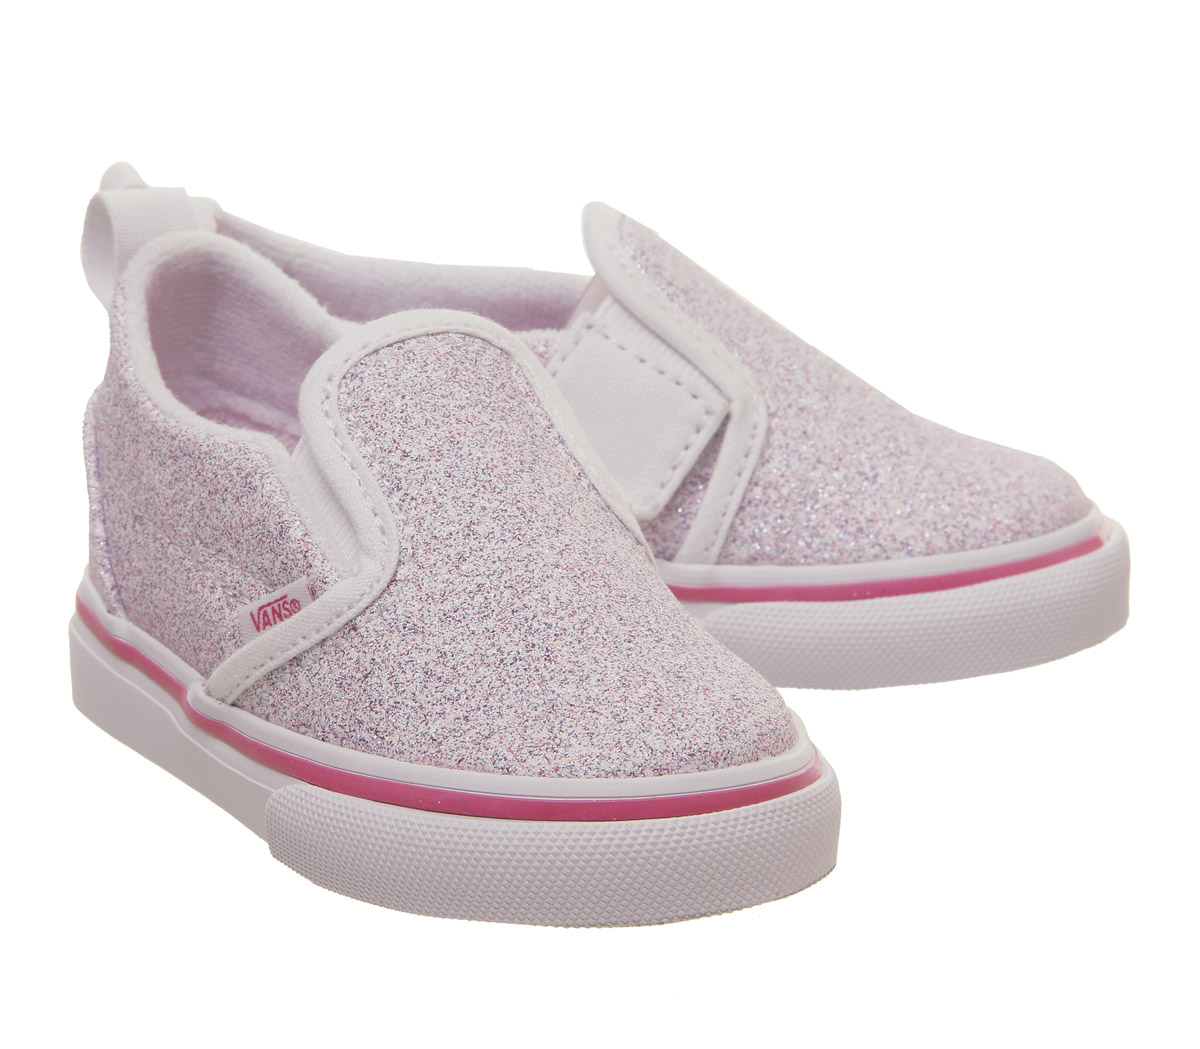 bf41d33b39cb5f Kids Vans Classic Slip On Toddlers True White Carmine Rose Glitter ...